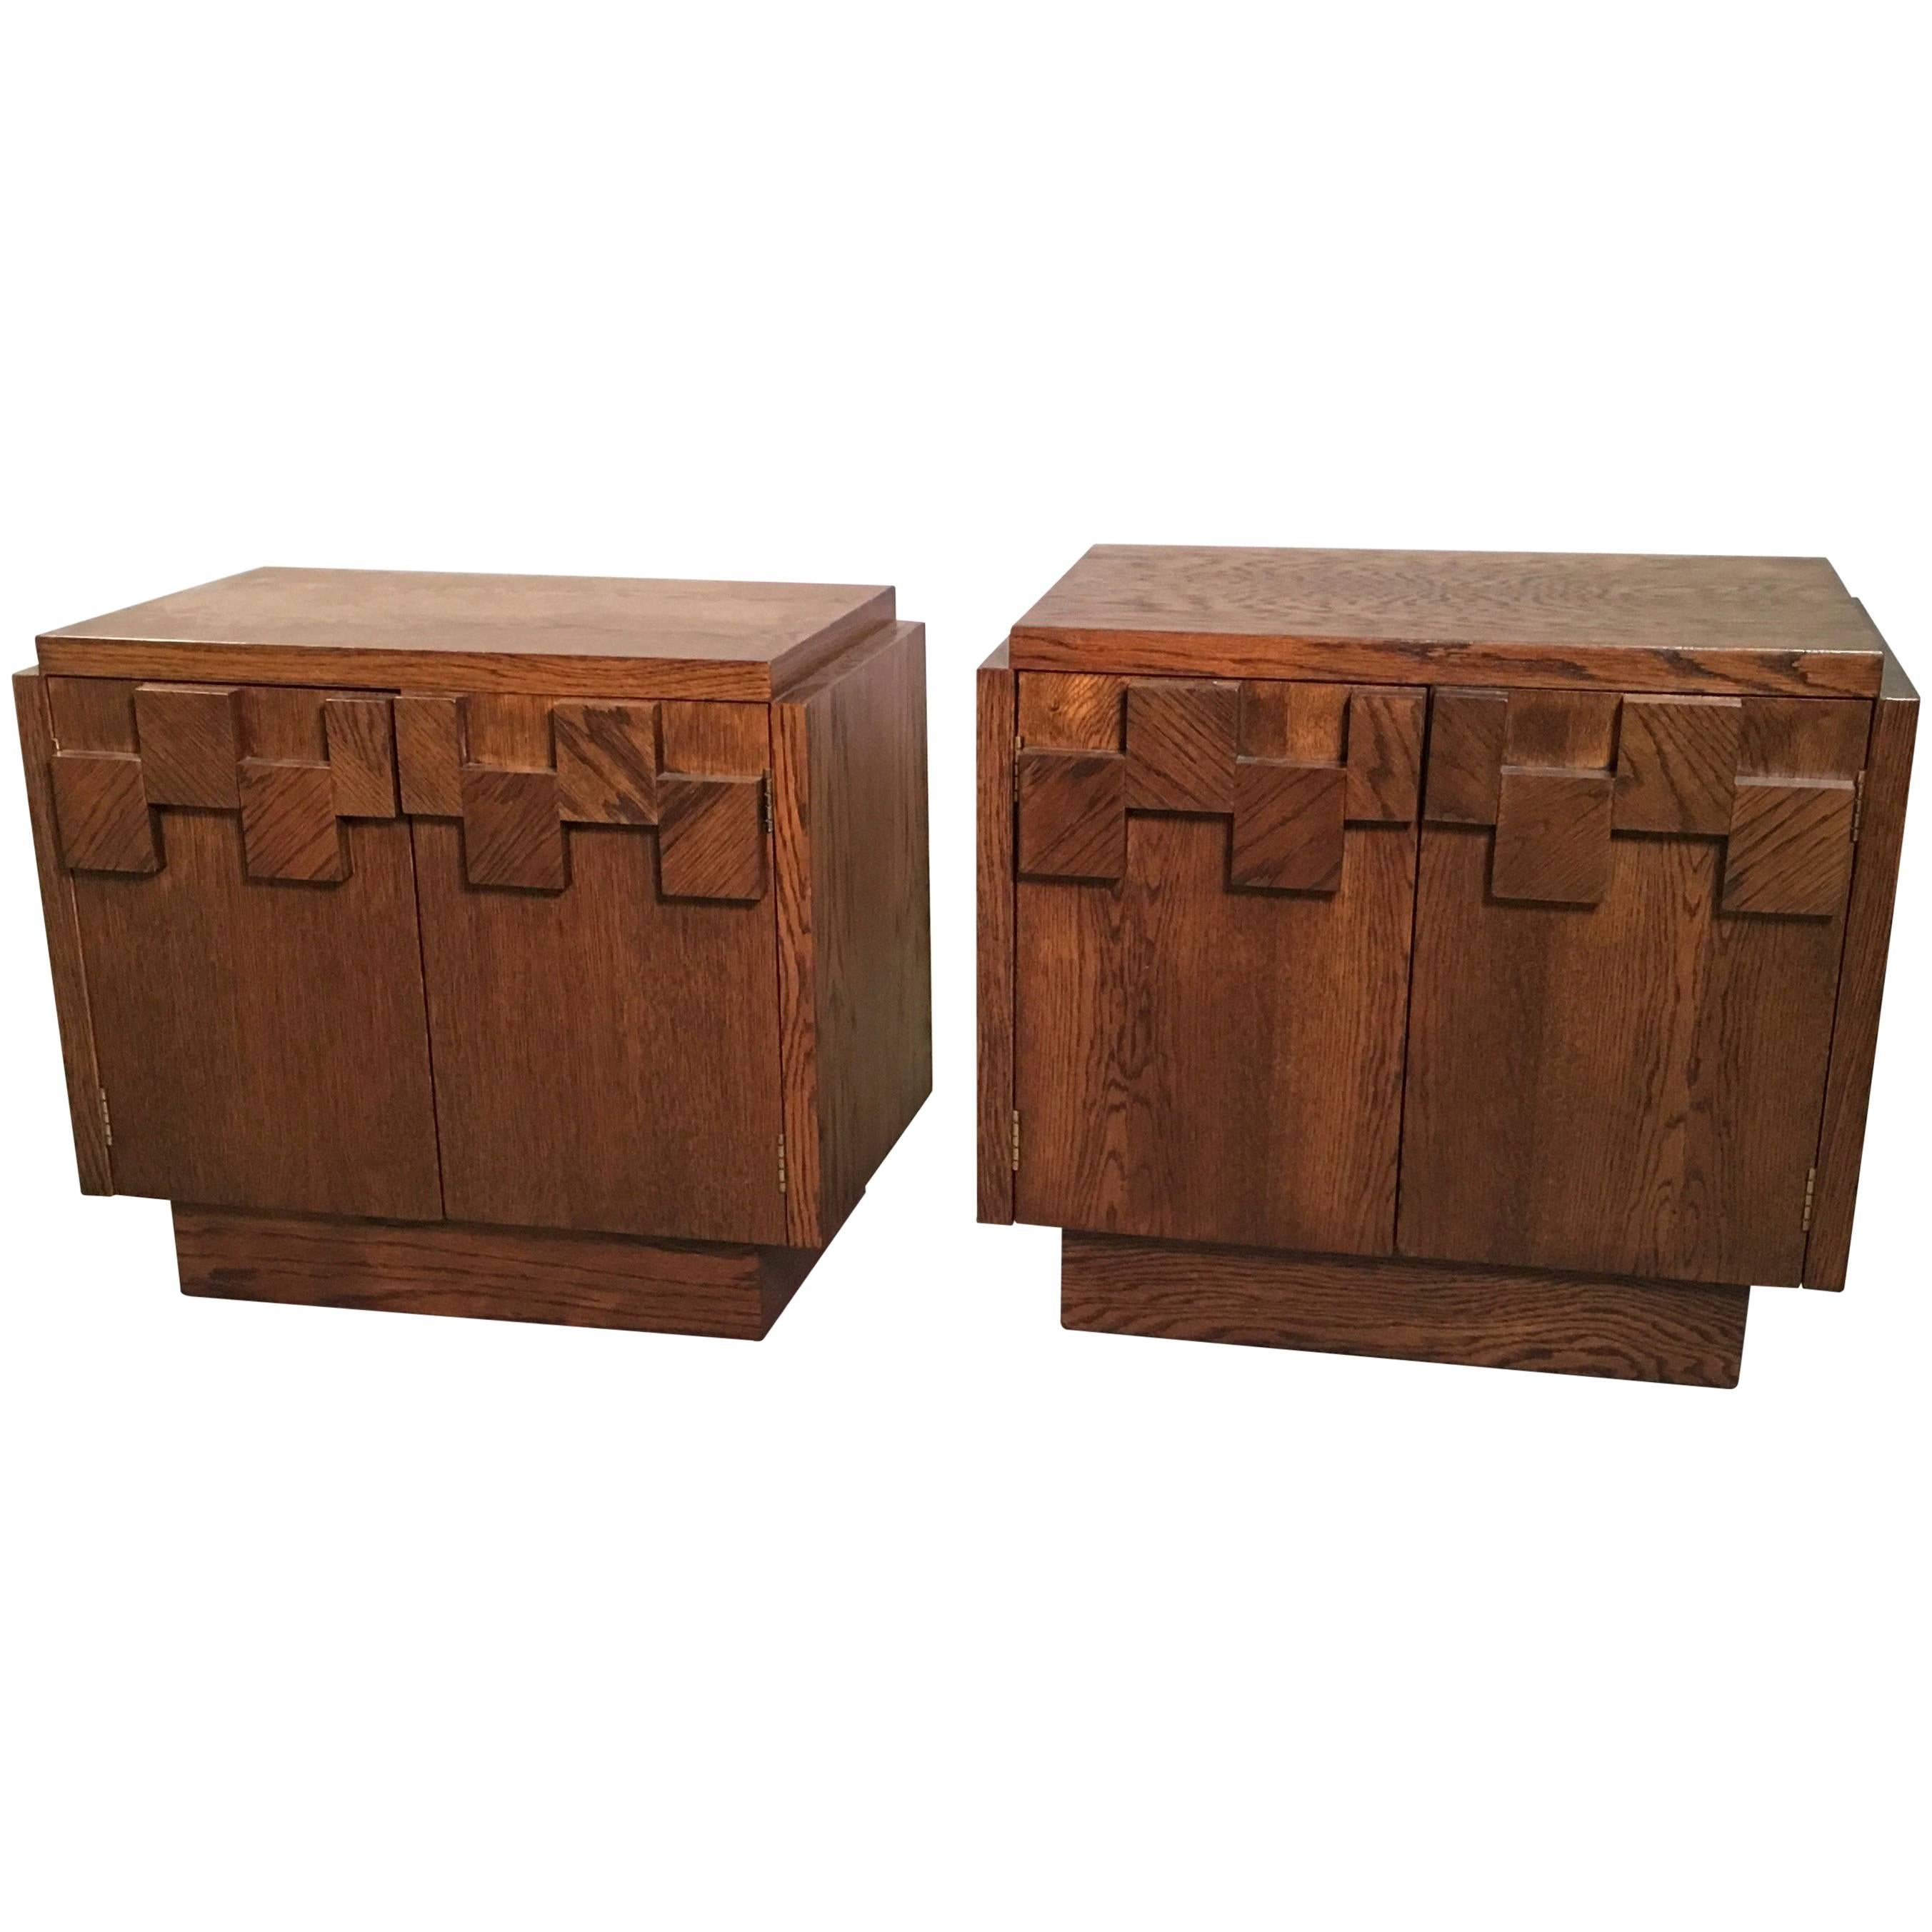 Brutalist Mosaic Oak End Table Nightstands by Lane Altavista